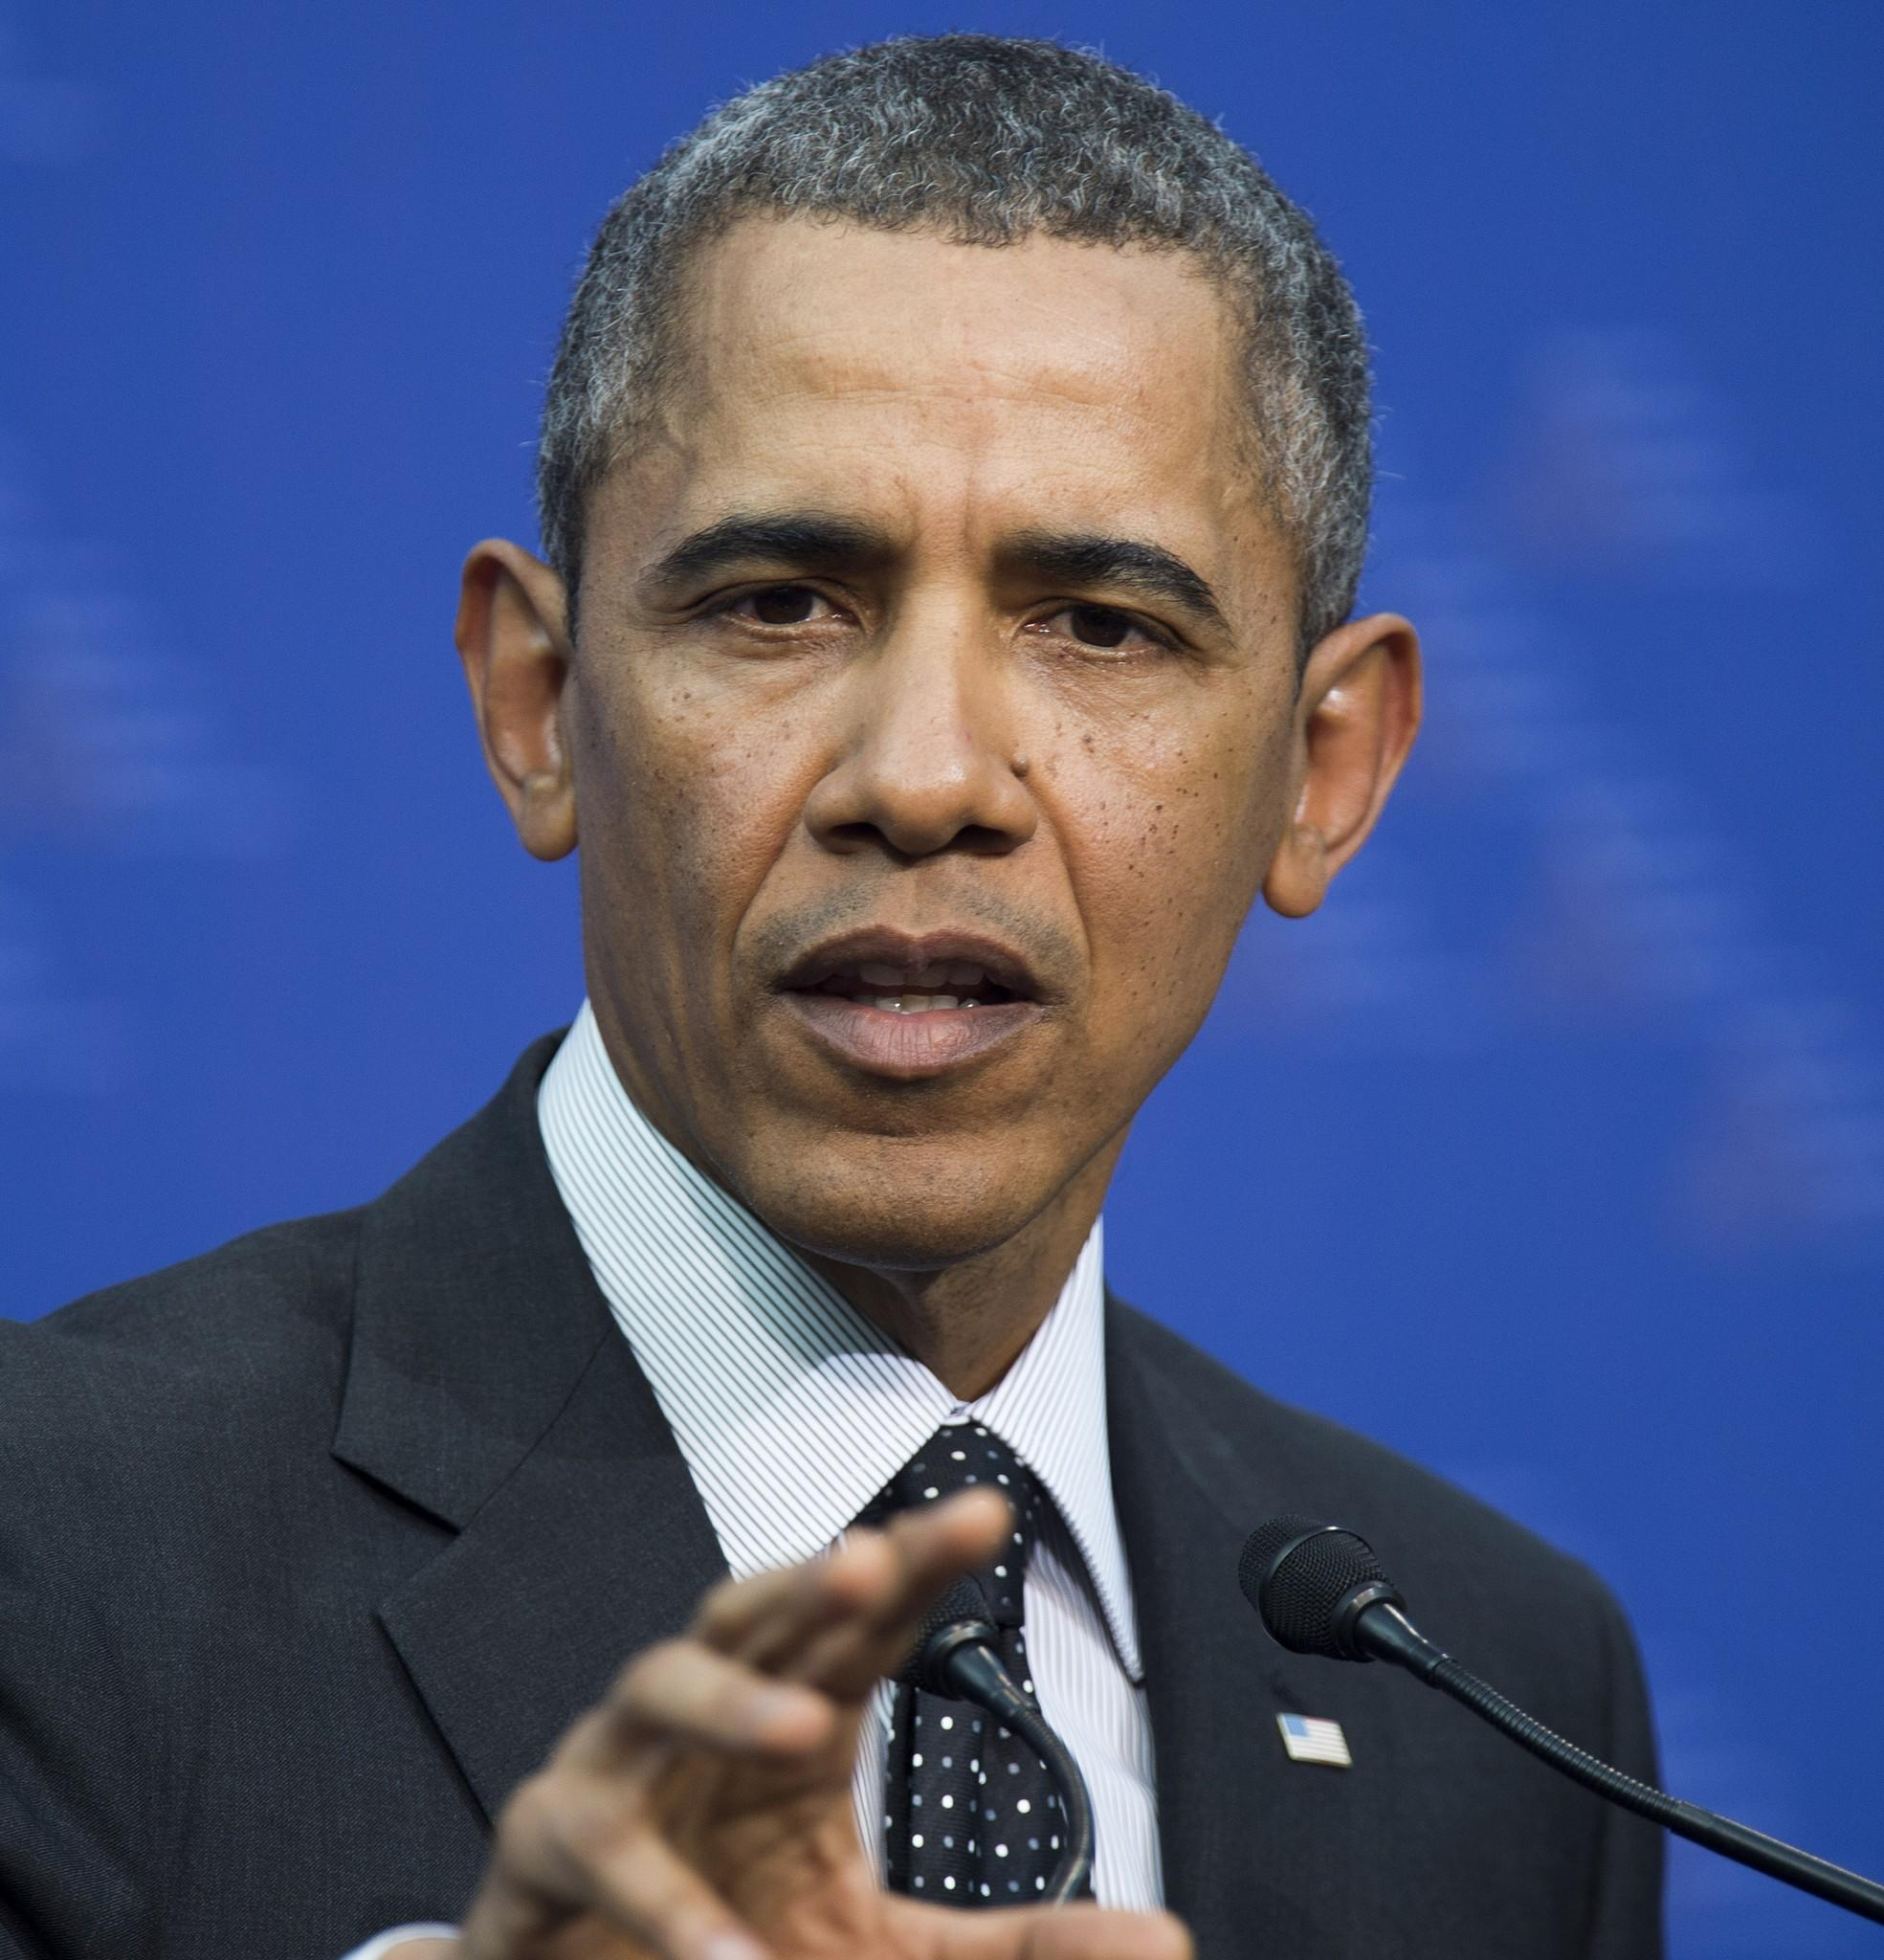 President Obama during a news conference in The Hague, Netherlands.